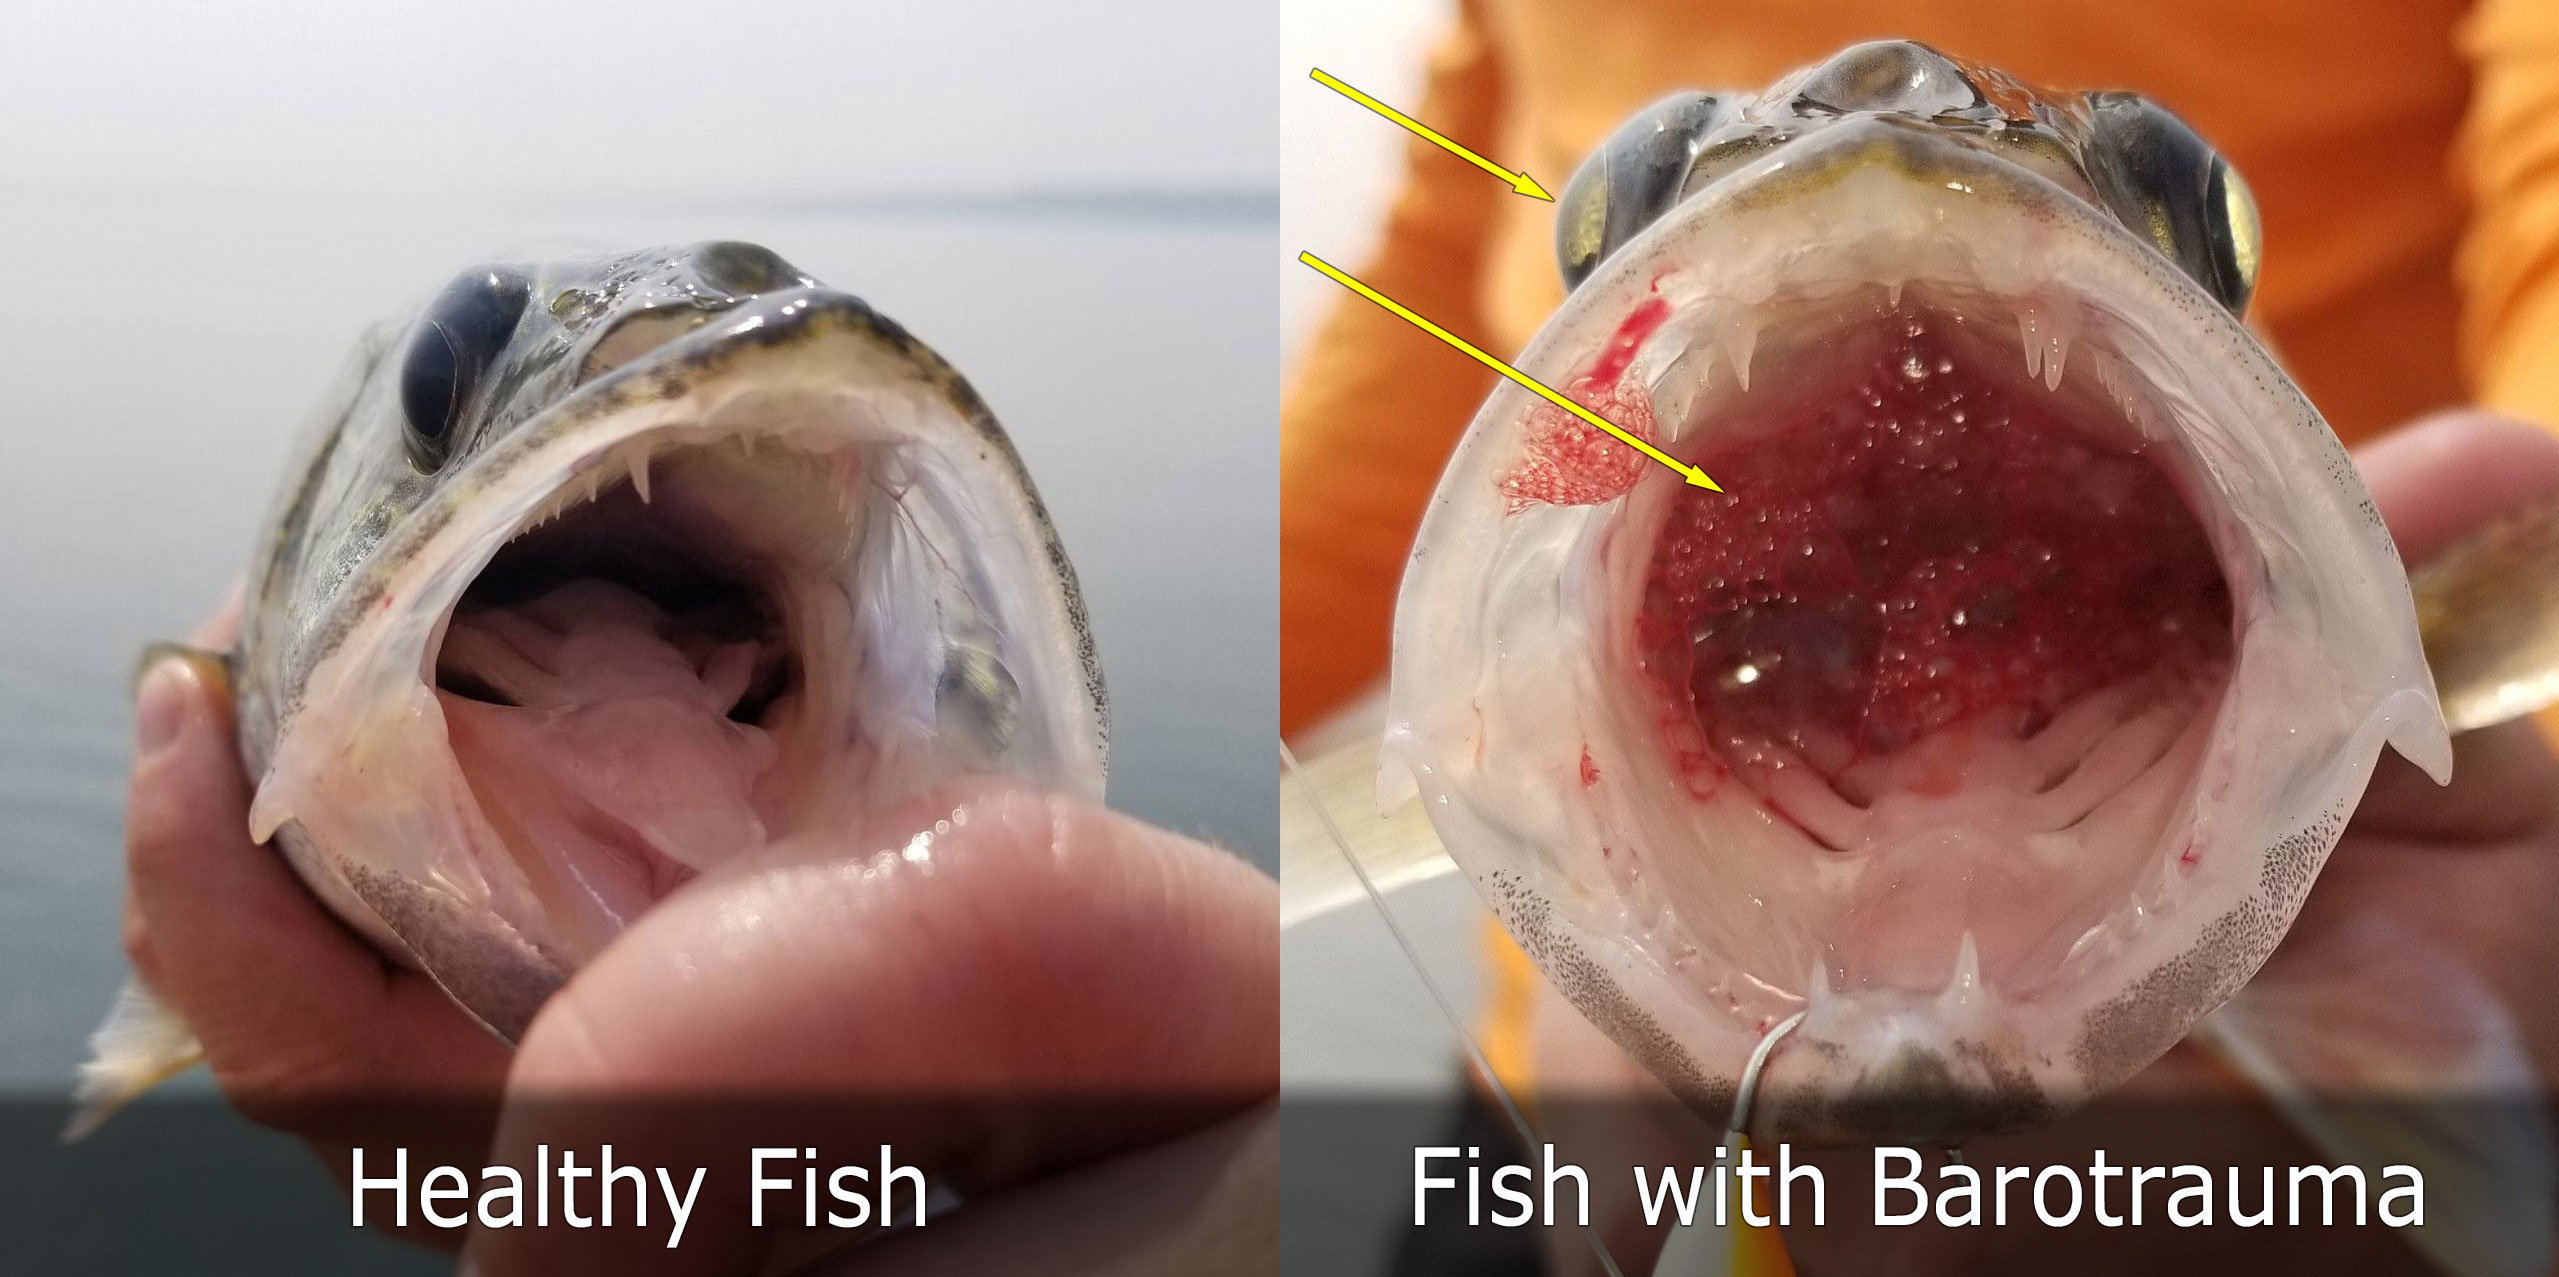 Healthy fish on left. Fish with barotrauma on right.